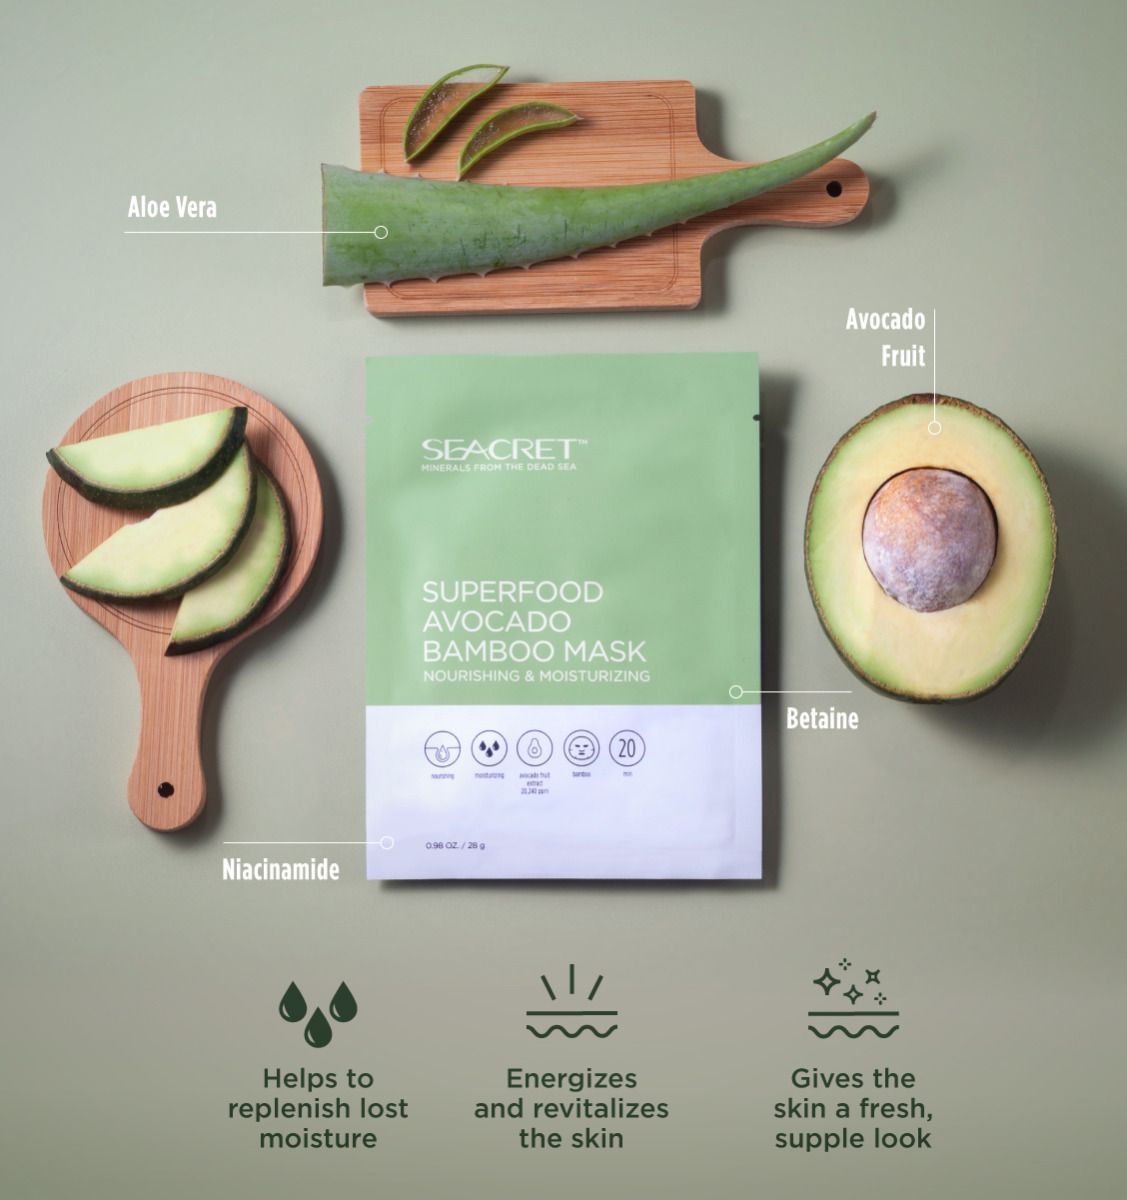 SuperFood Avocado Bamboo Mask